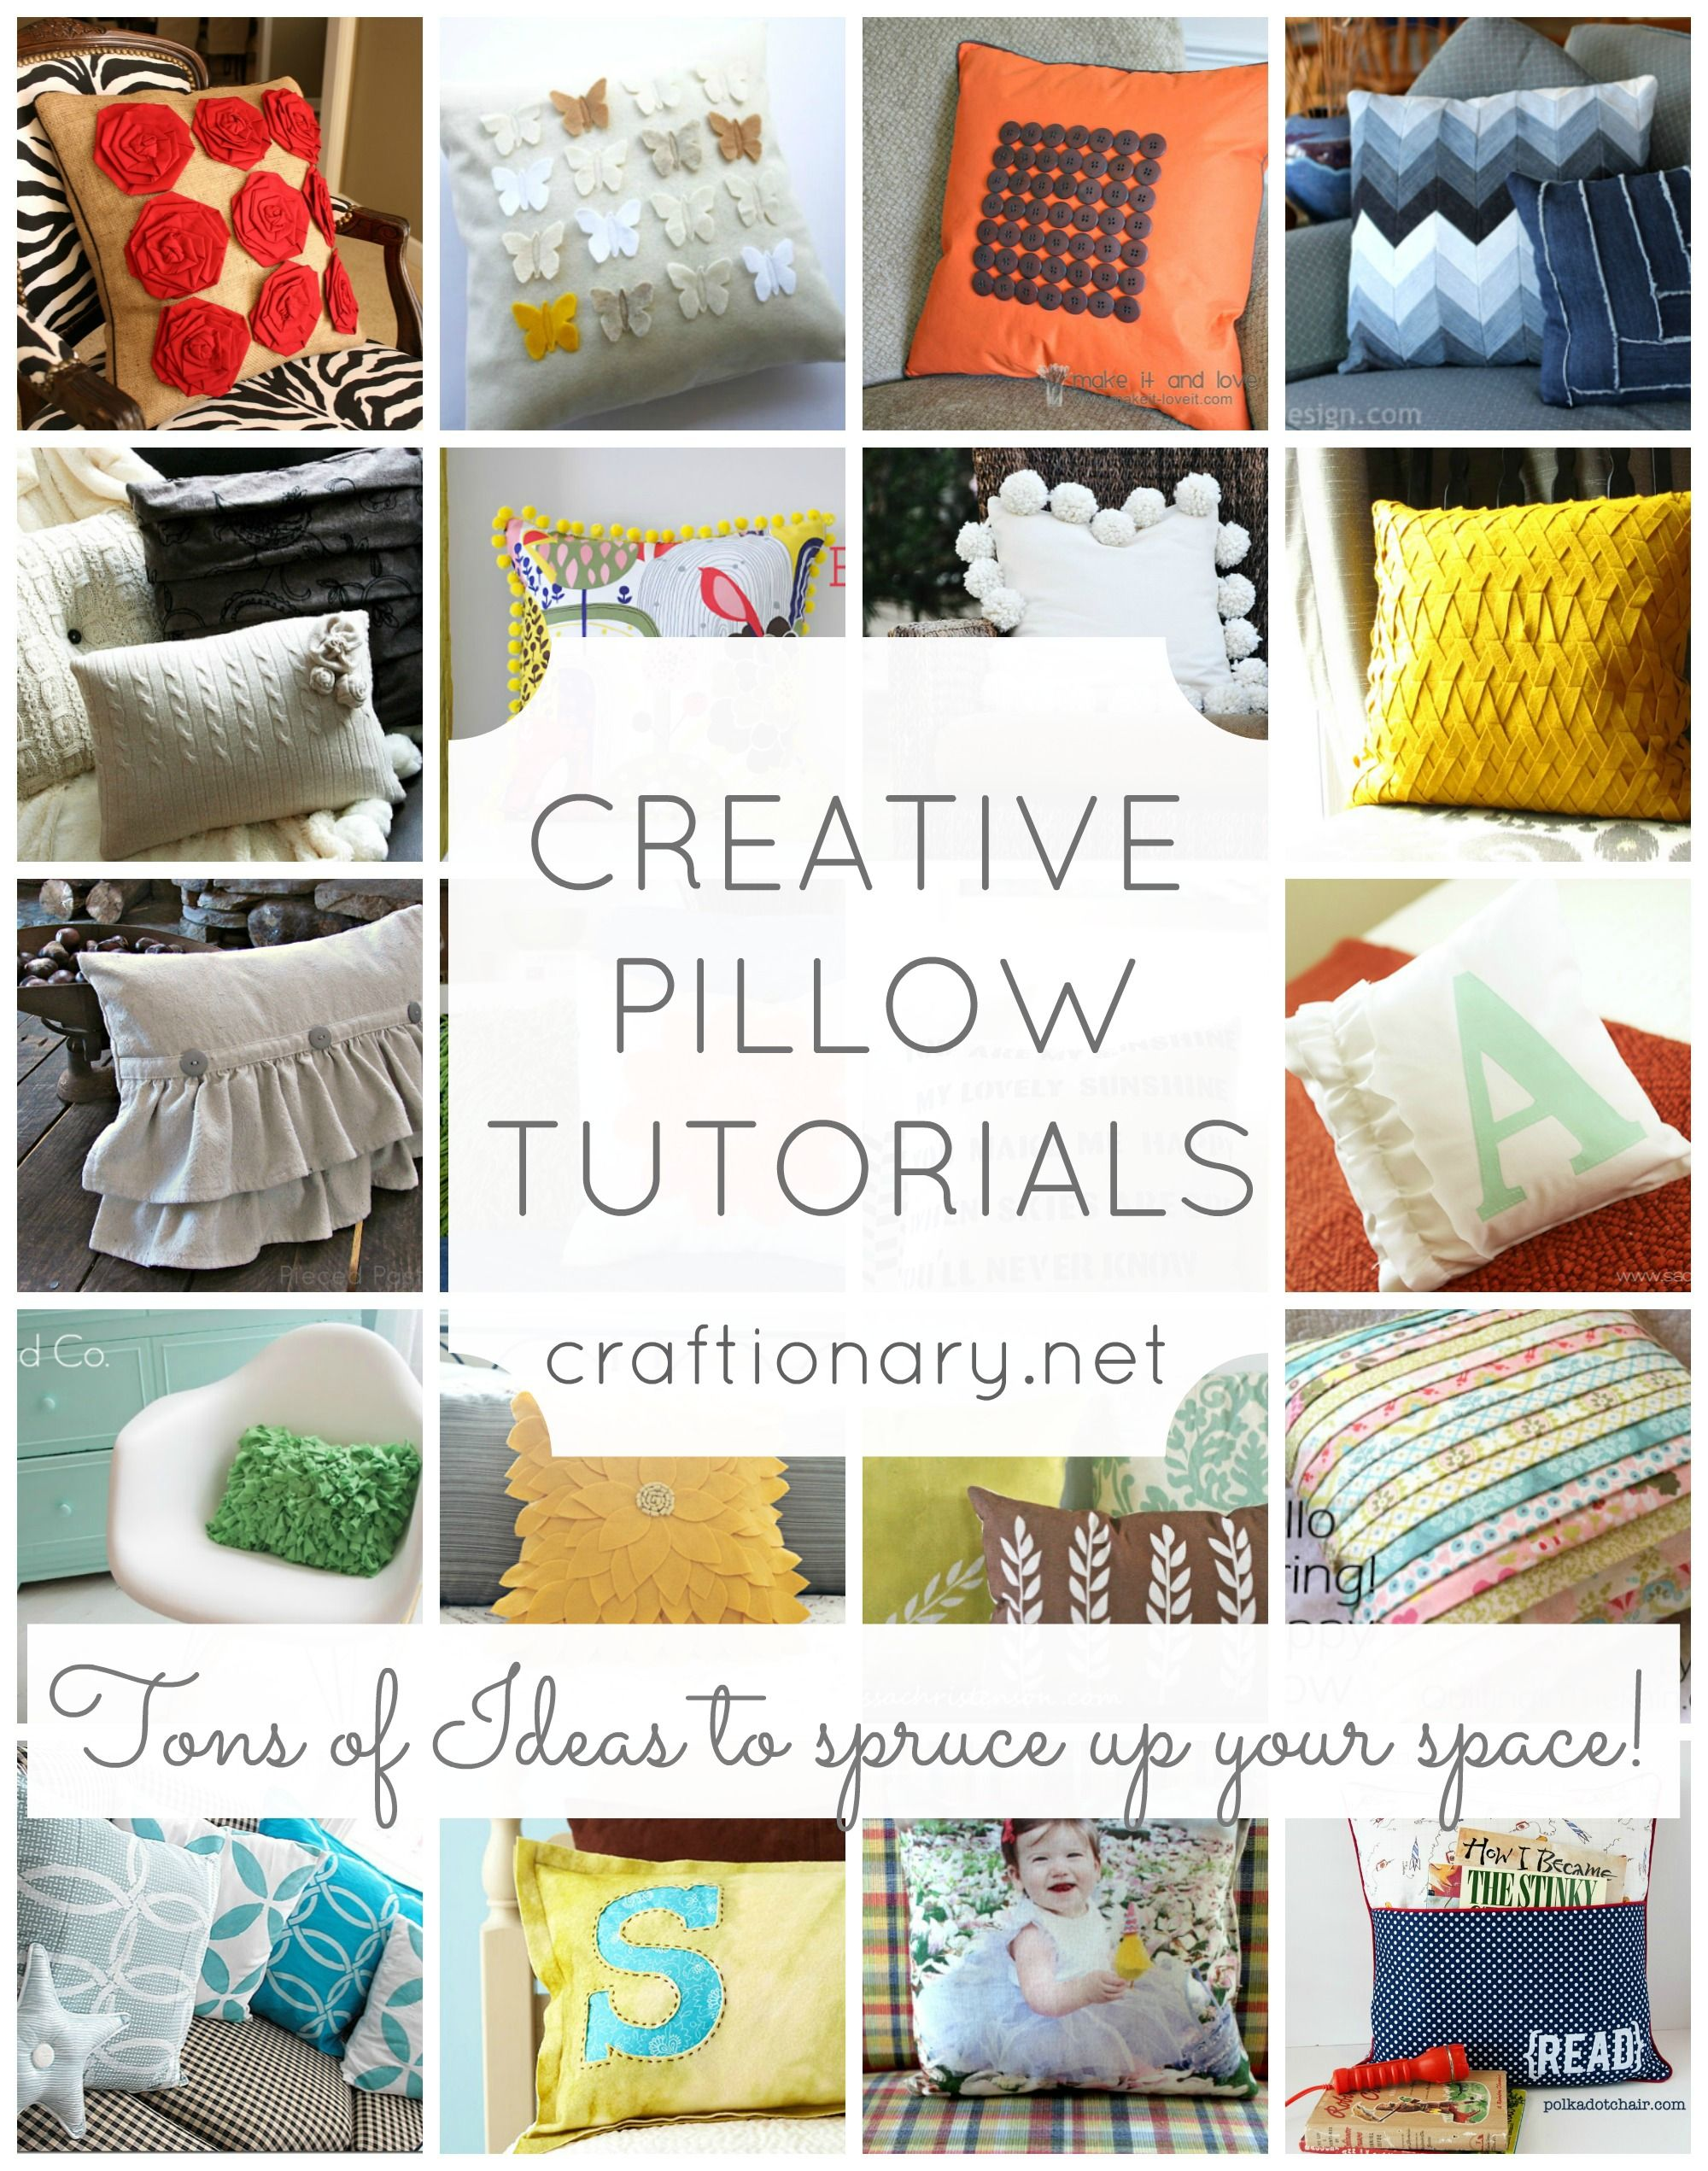 in search of a a throw pillow tutorial and found this one. not